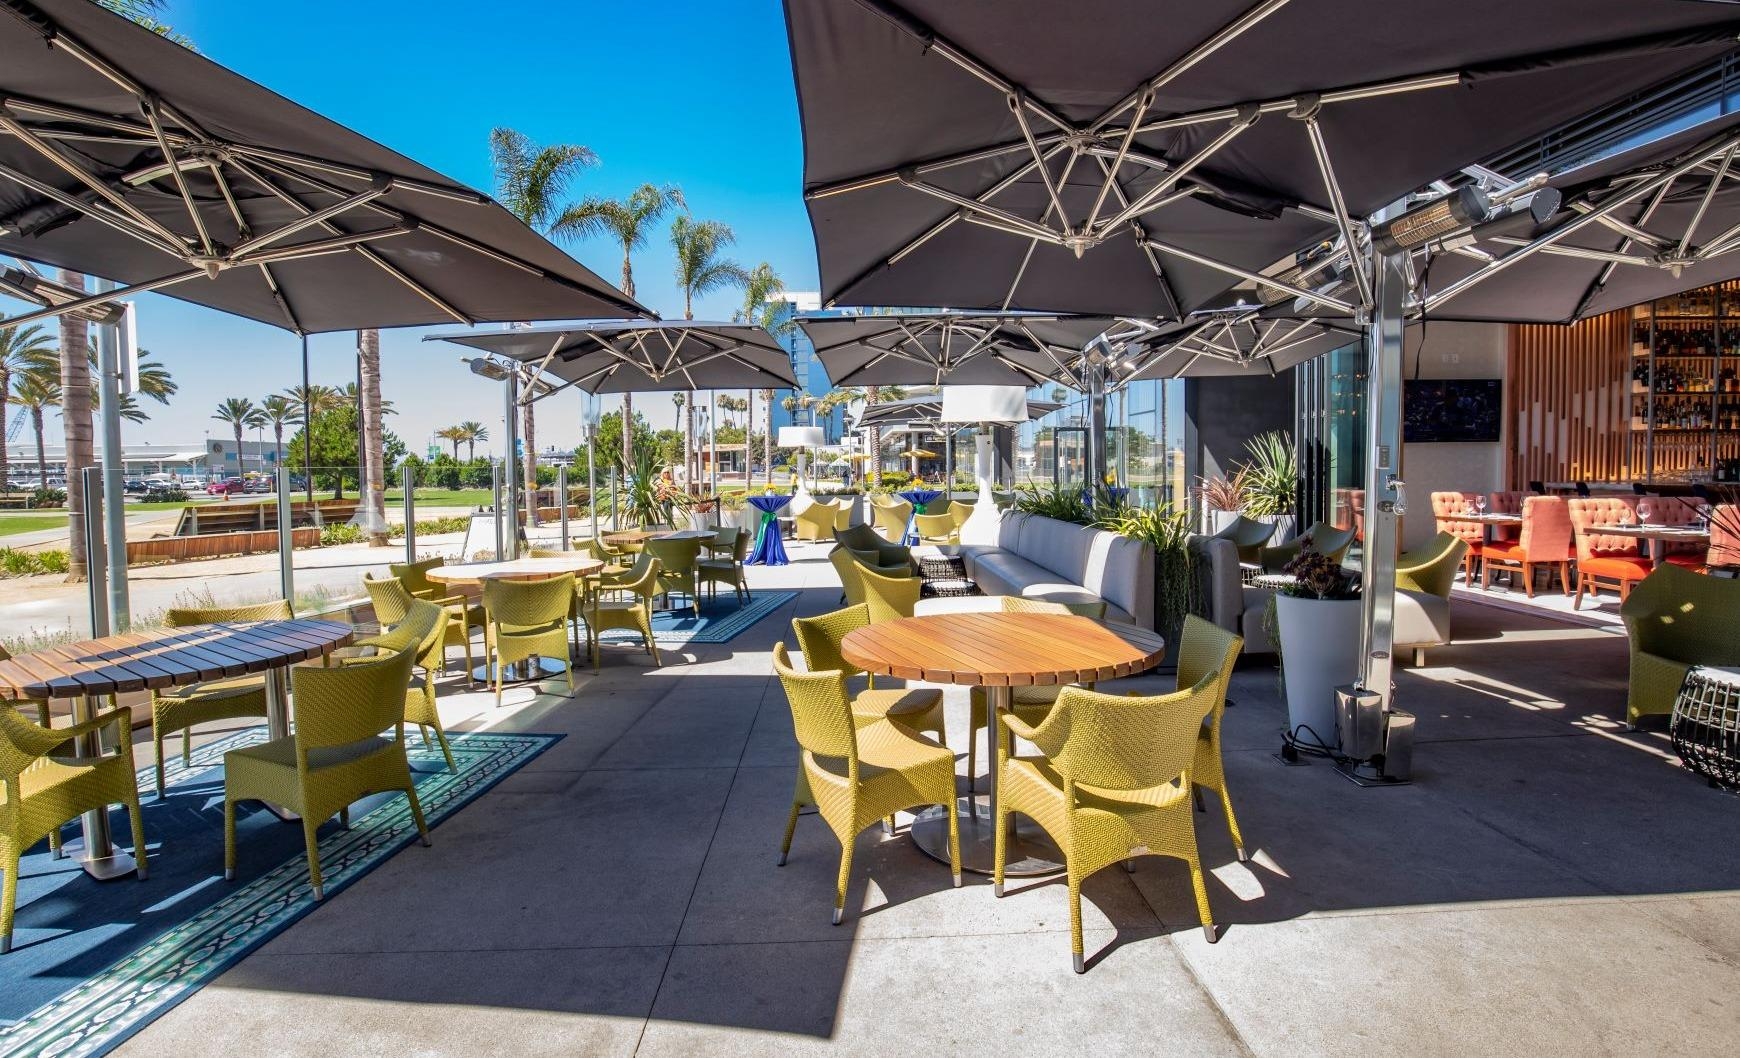 Del Frisco's Double Eagle Steakhouse San Diego Main Patio private dining room